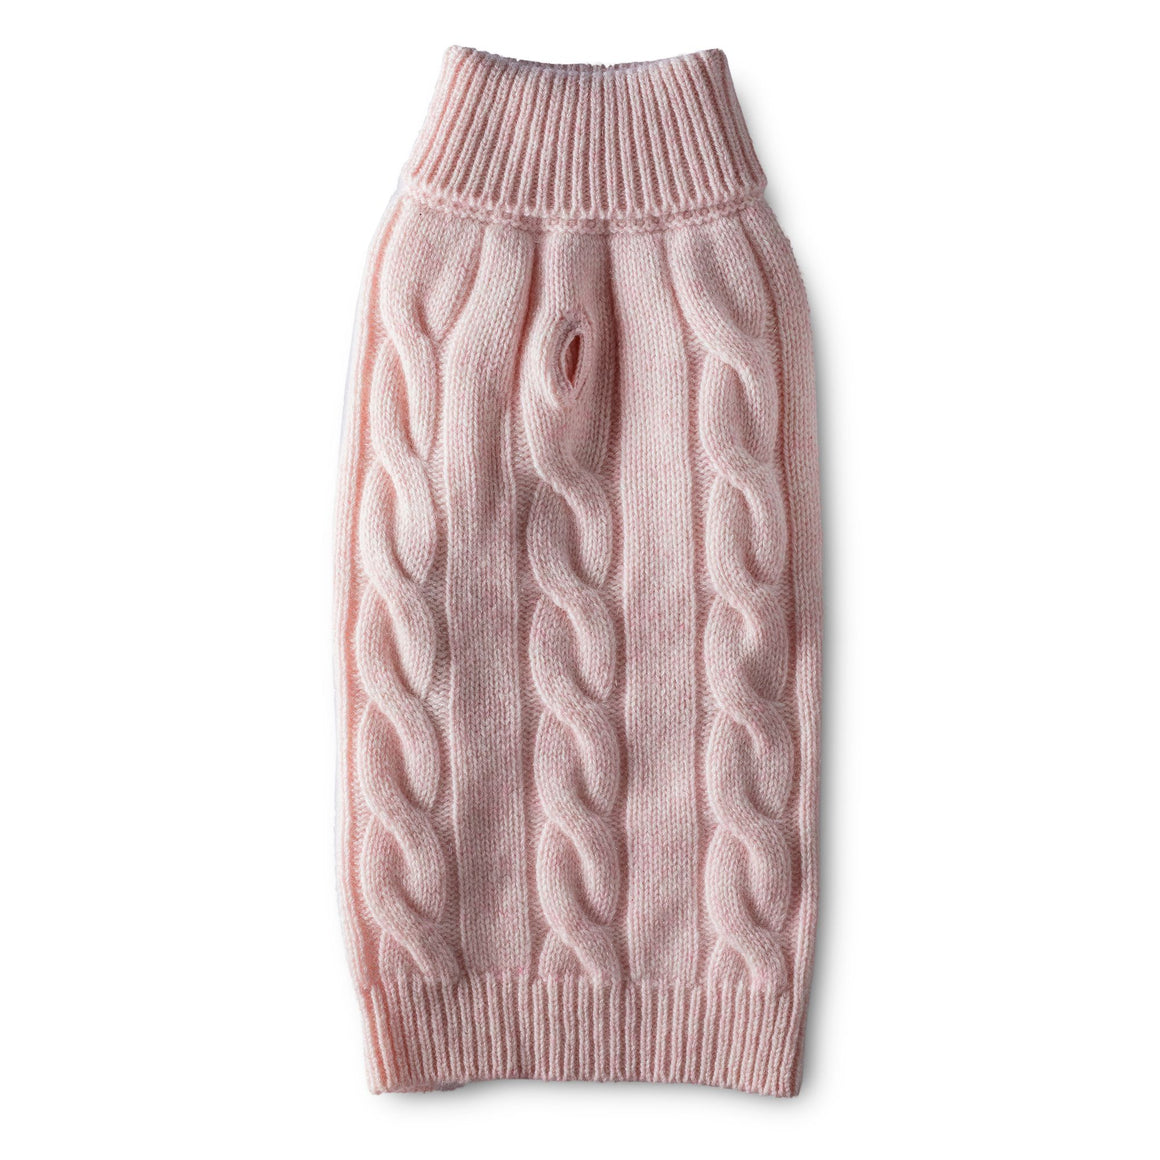 Cashmere Cable Turtleneck Sweater - Pink